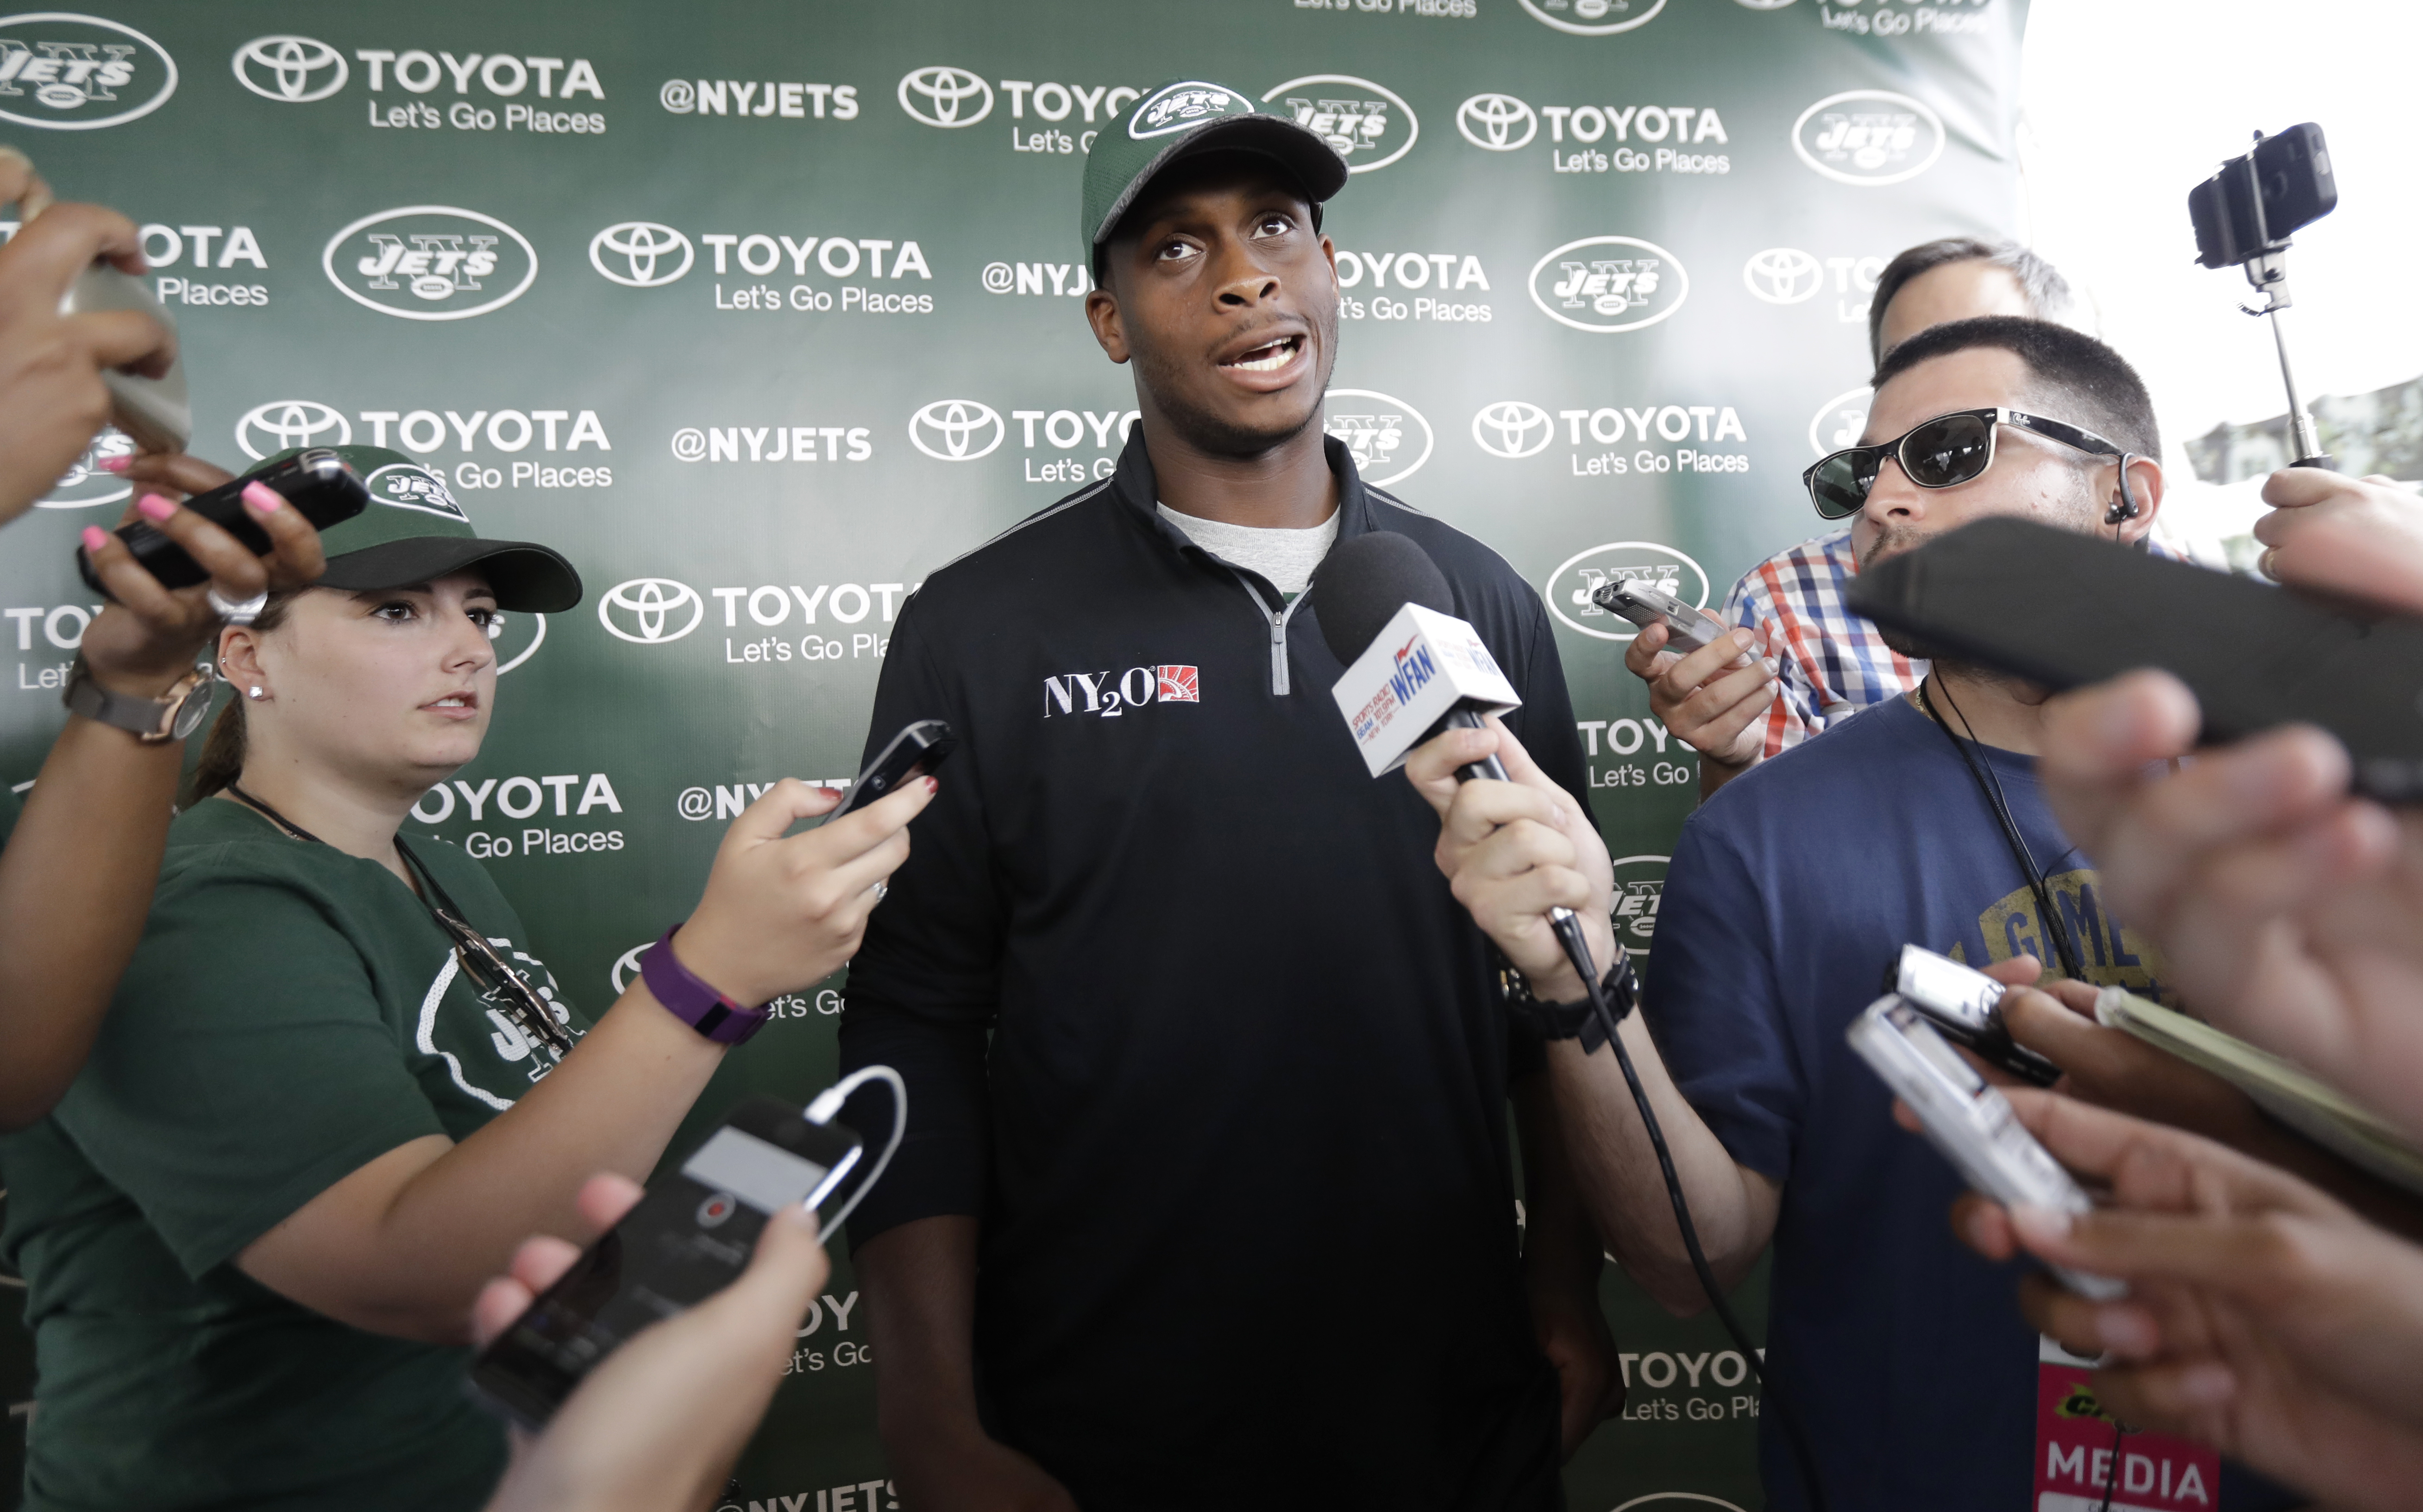 New York Jets quarterback Geno Smith talks to reporters during NFL football training camp, Thursday, July 28, 2016, in Florham Park, N.J. (AP Photo/Julio Cortez)